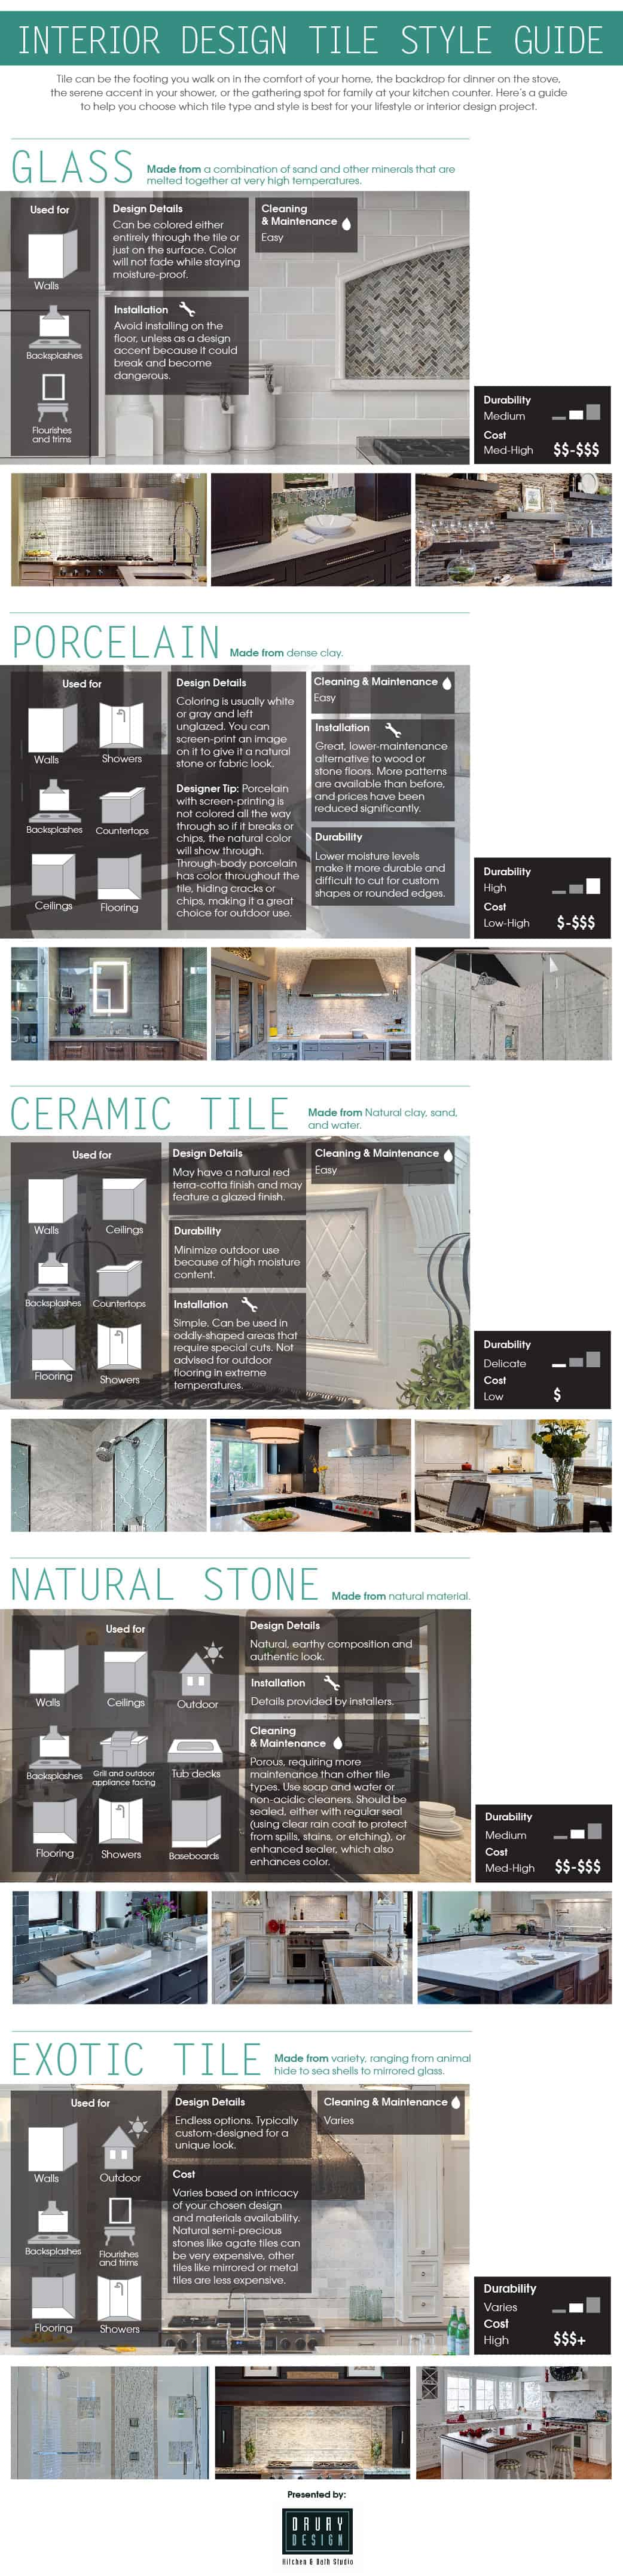 Tile_Guide_for_Interior_Design_-_Drury_Design